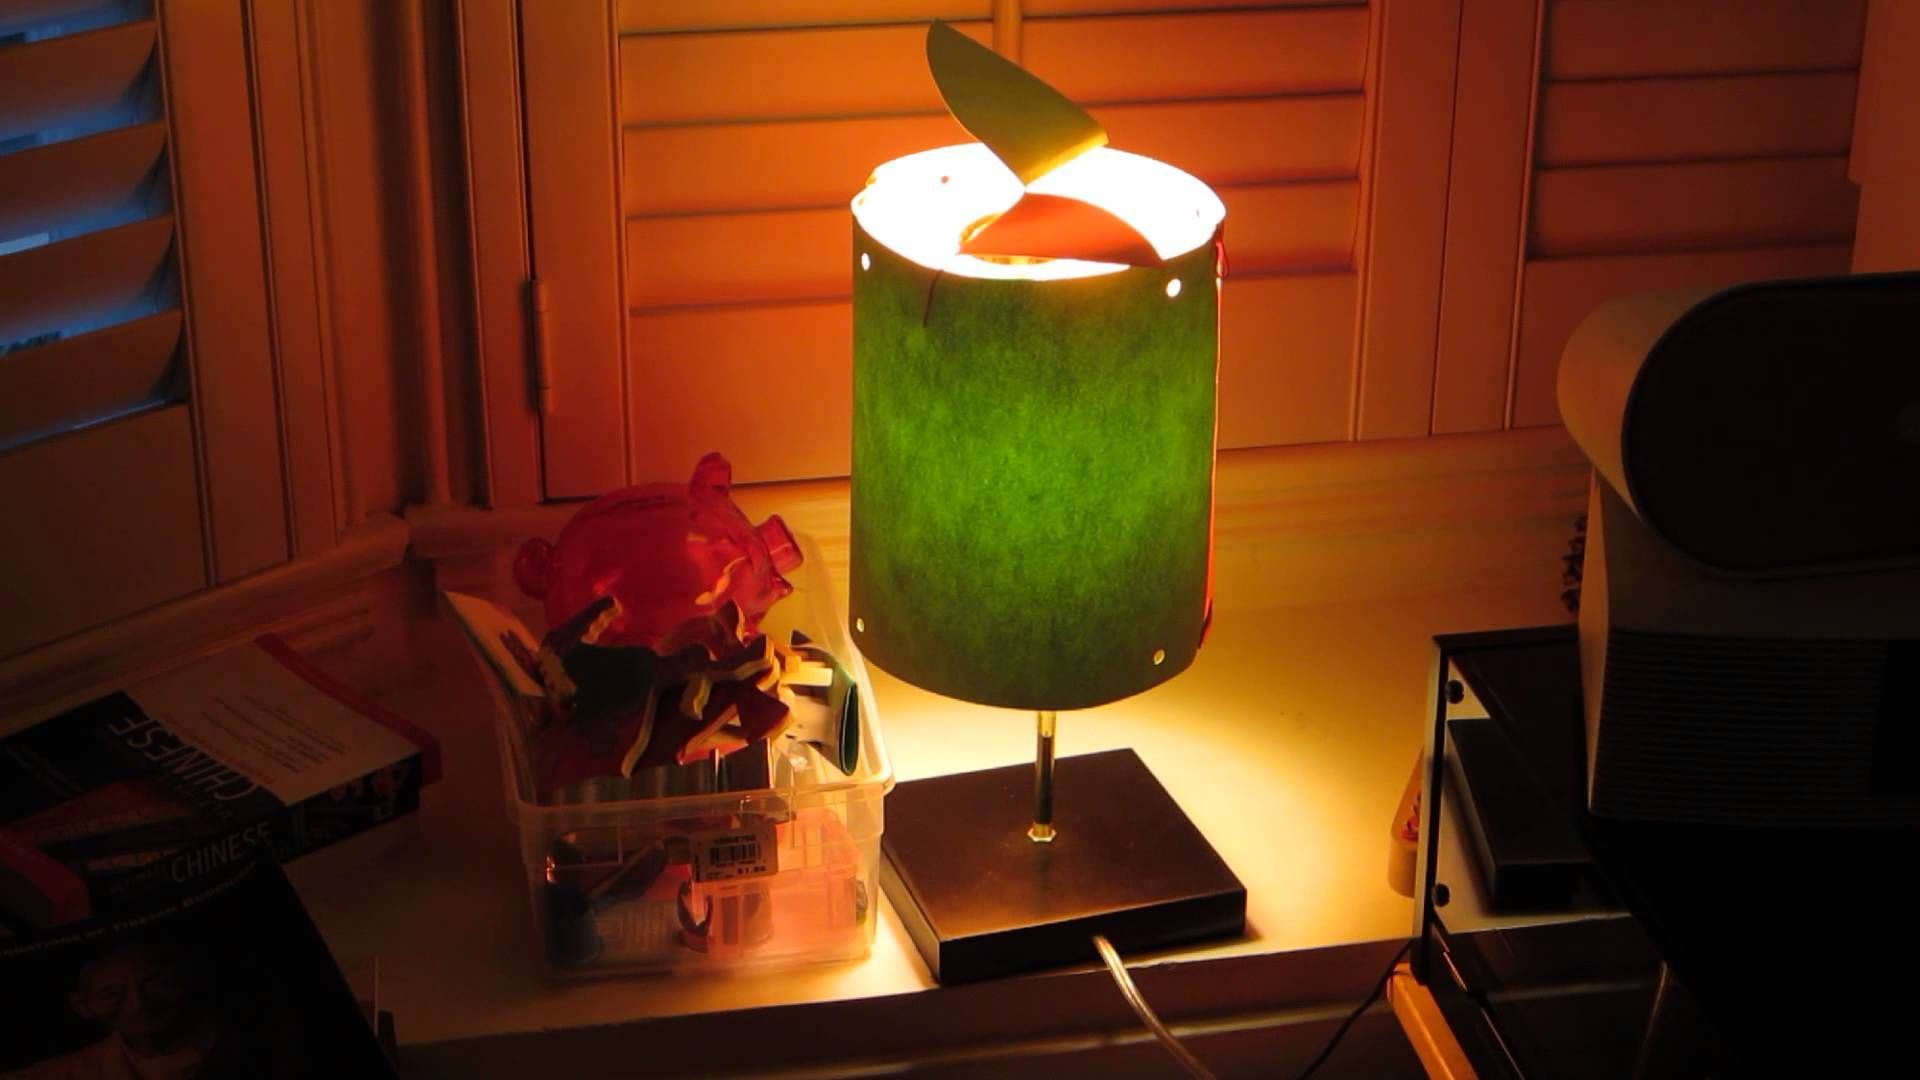 Homemade Spinning Lamp Shade Inspired By Curious George Lamp